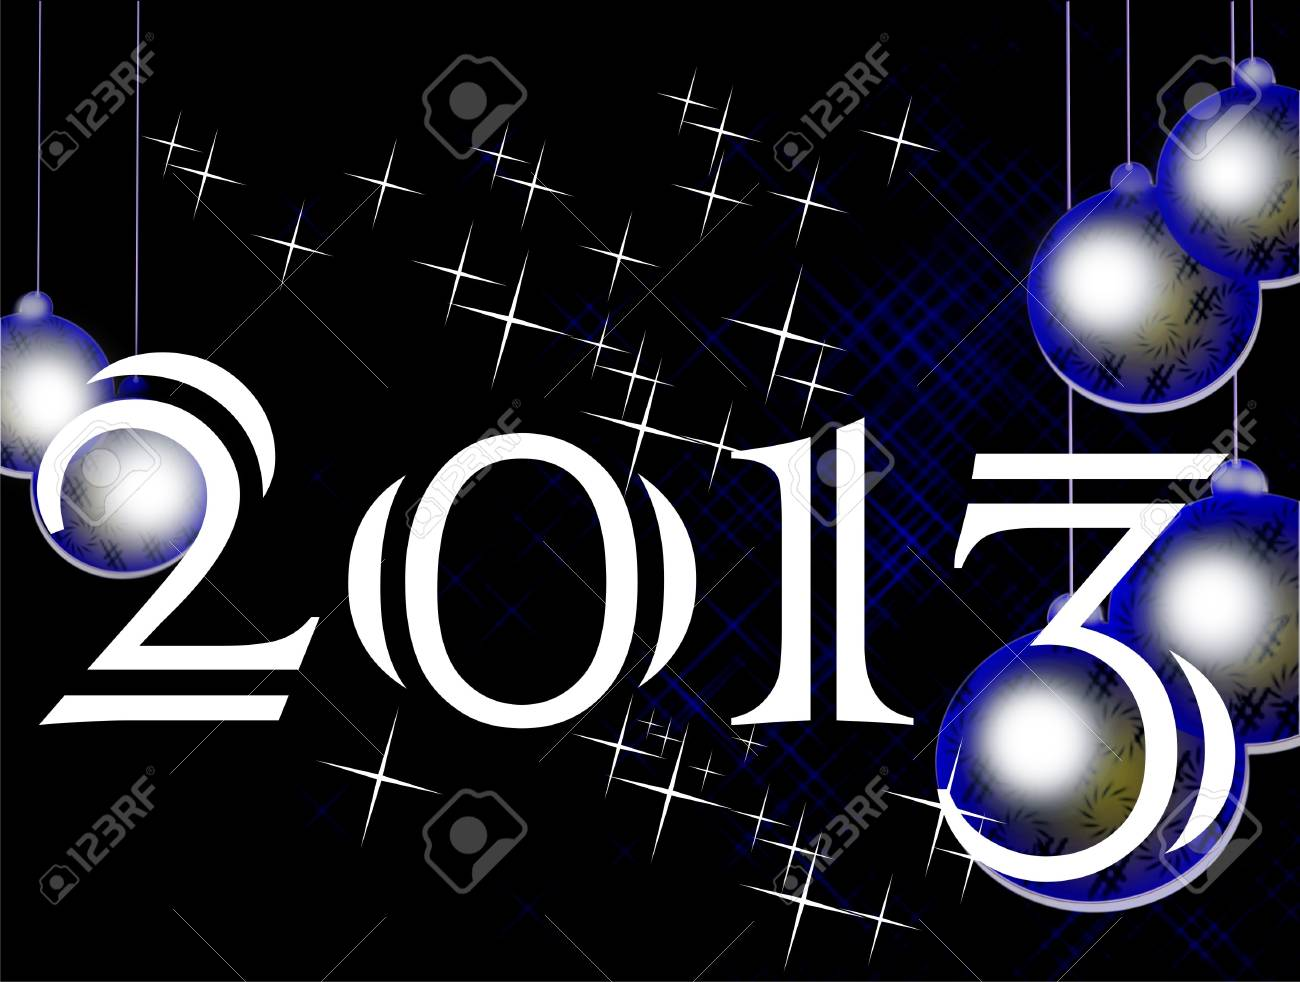 2013, new Year Stock Photo - 14256480